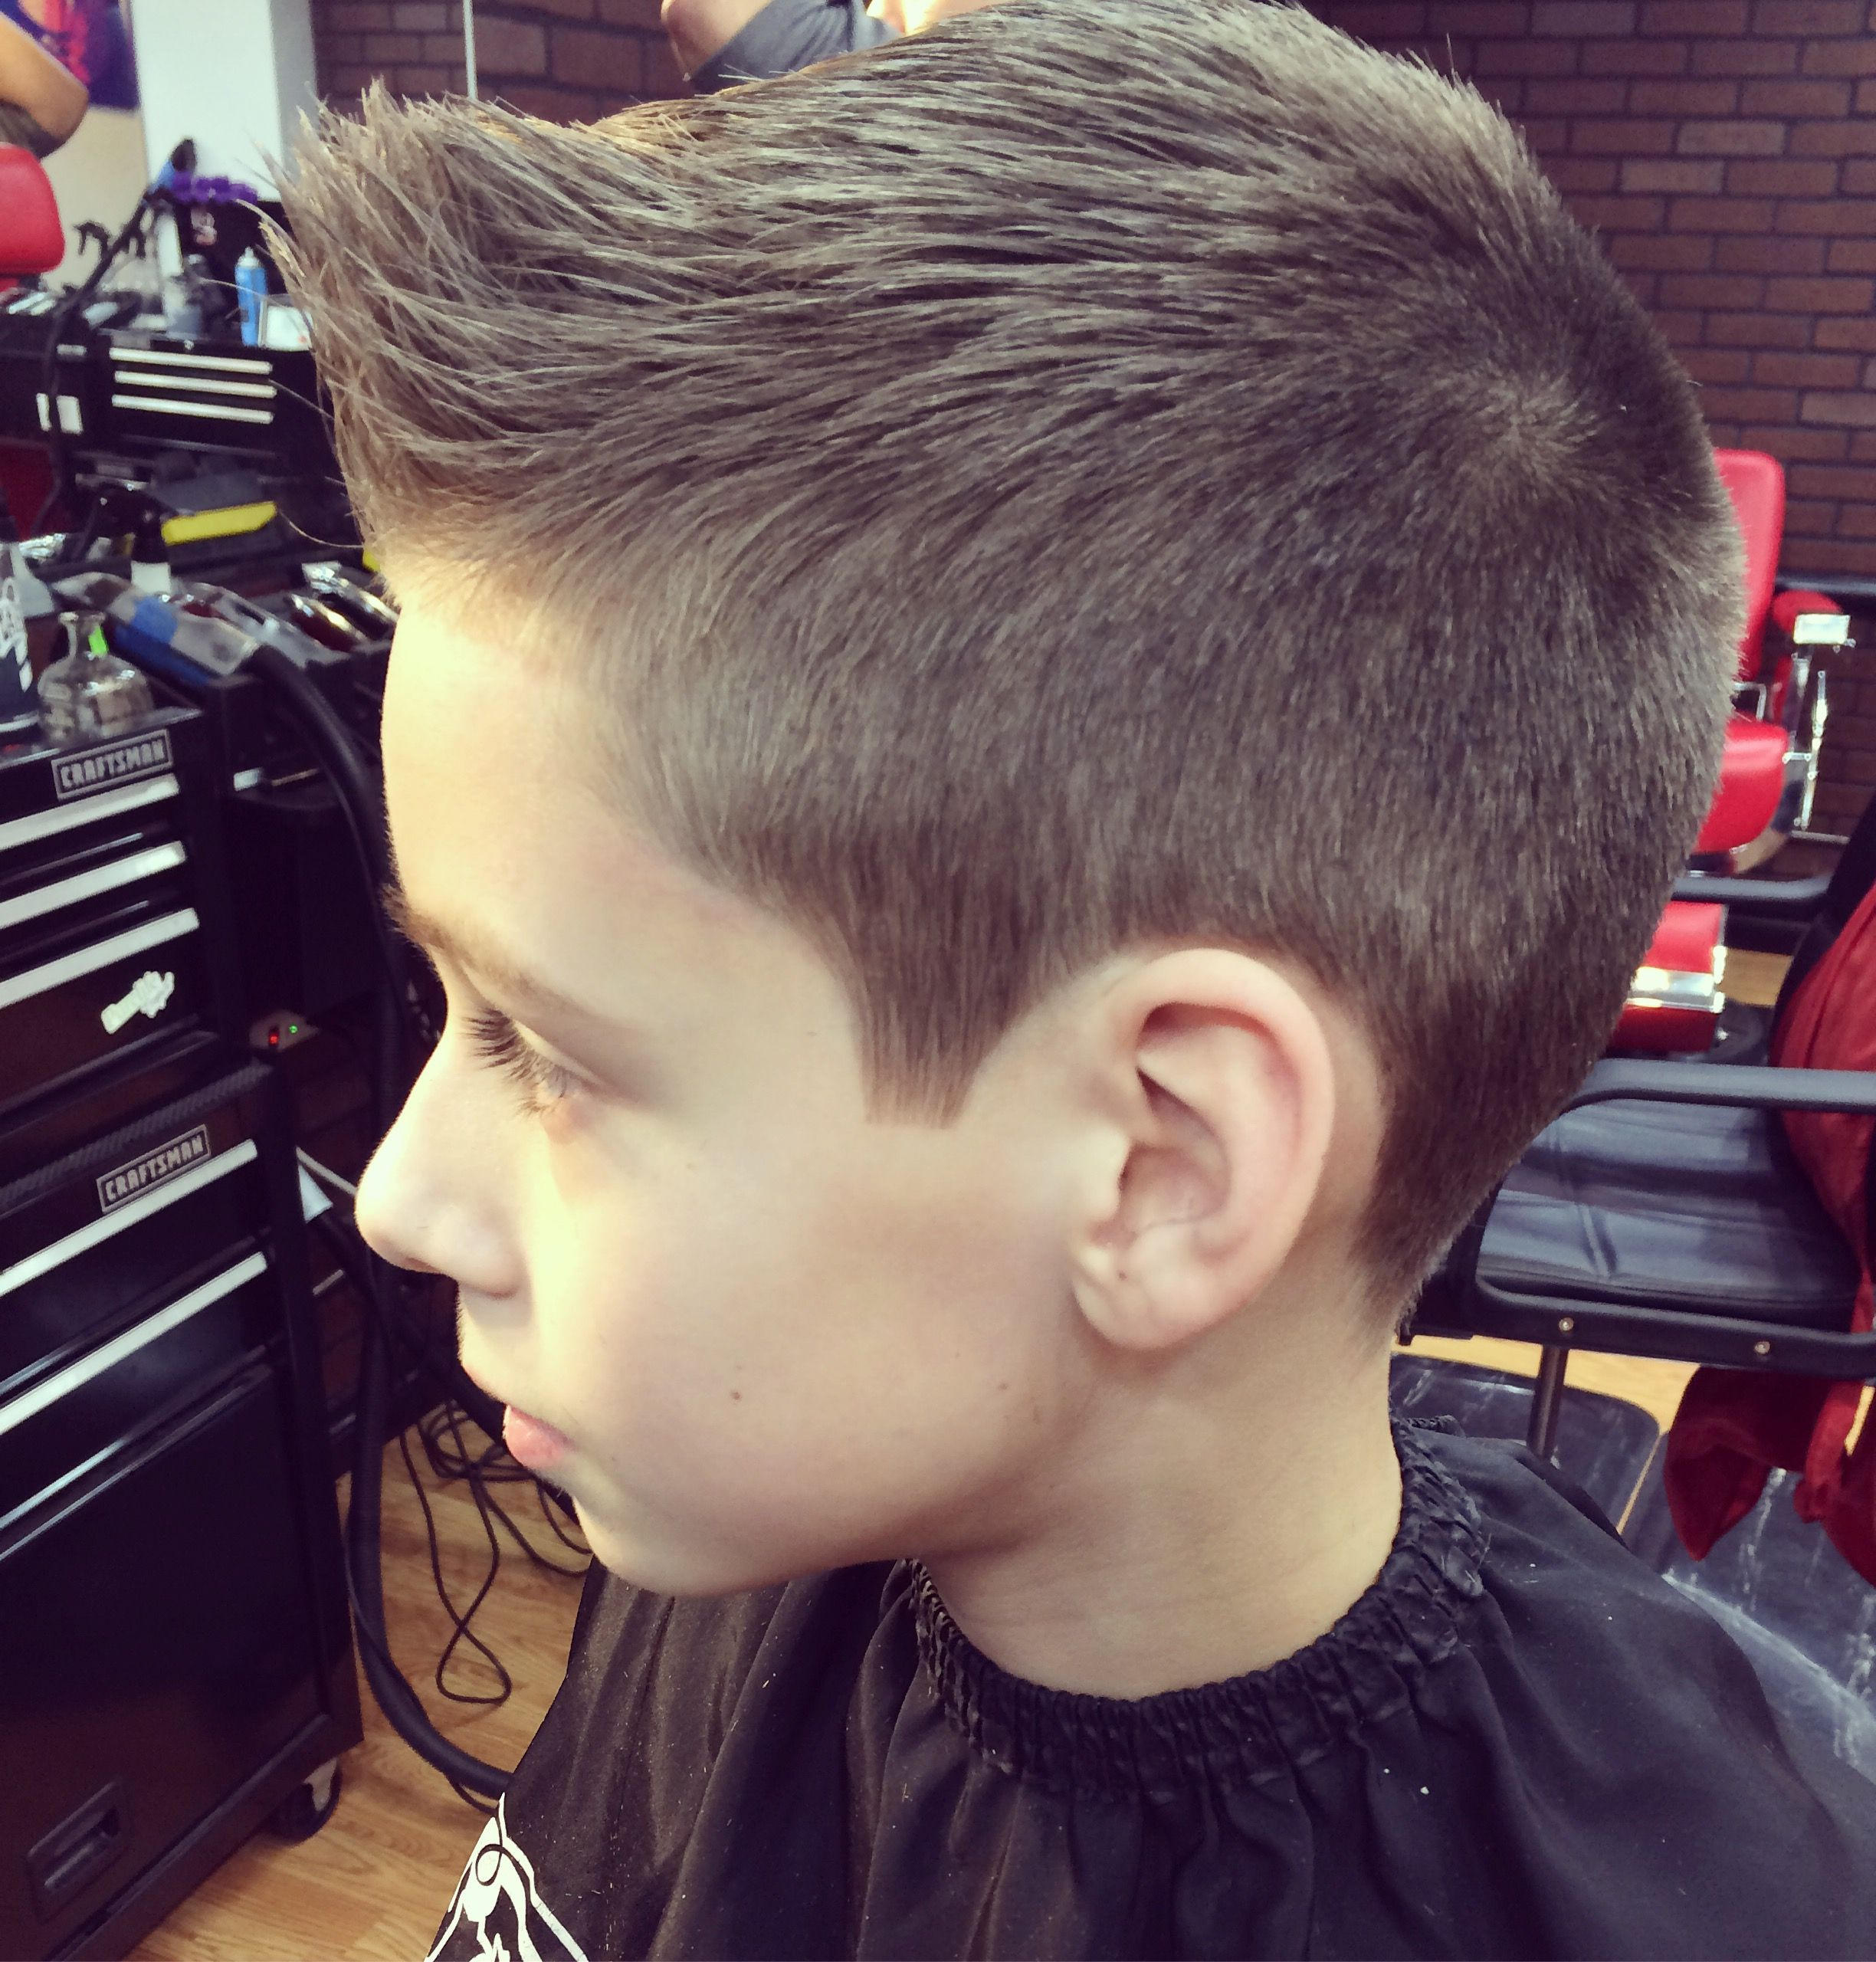 Stylish Boy S Haircut Ethandempsey Pnwstyle Javisfades Boyshaircut Coolhair Boys Haircuts Stylish Boy Haircuts Boy Haircuts Short